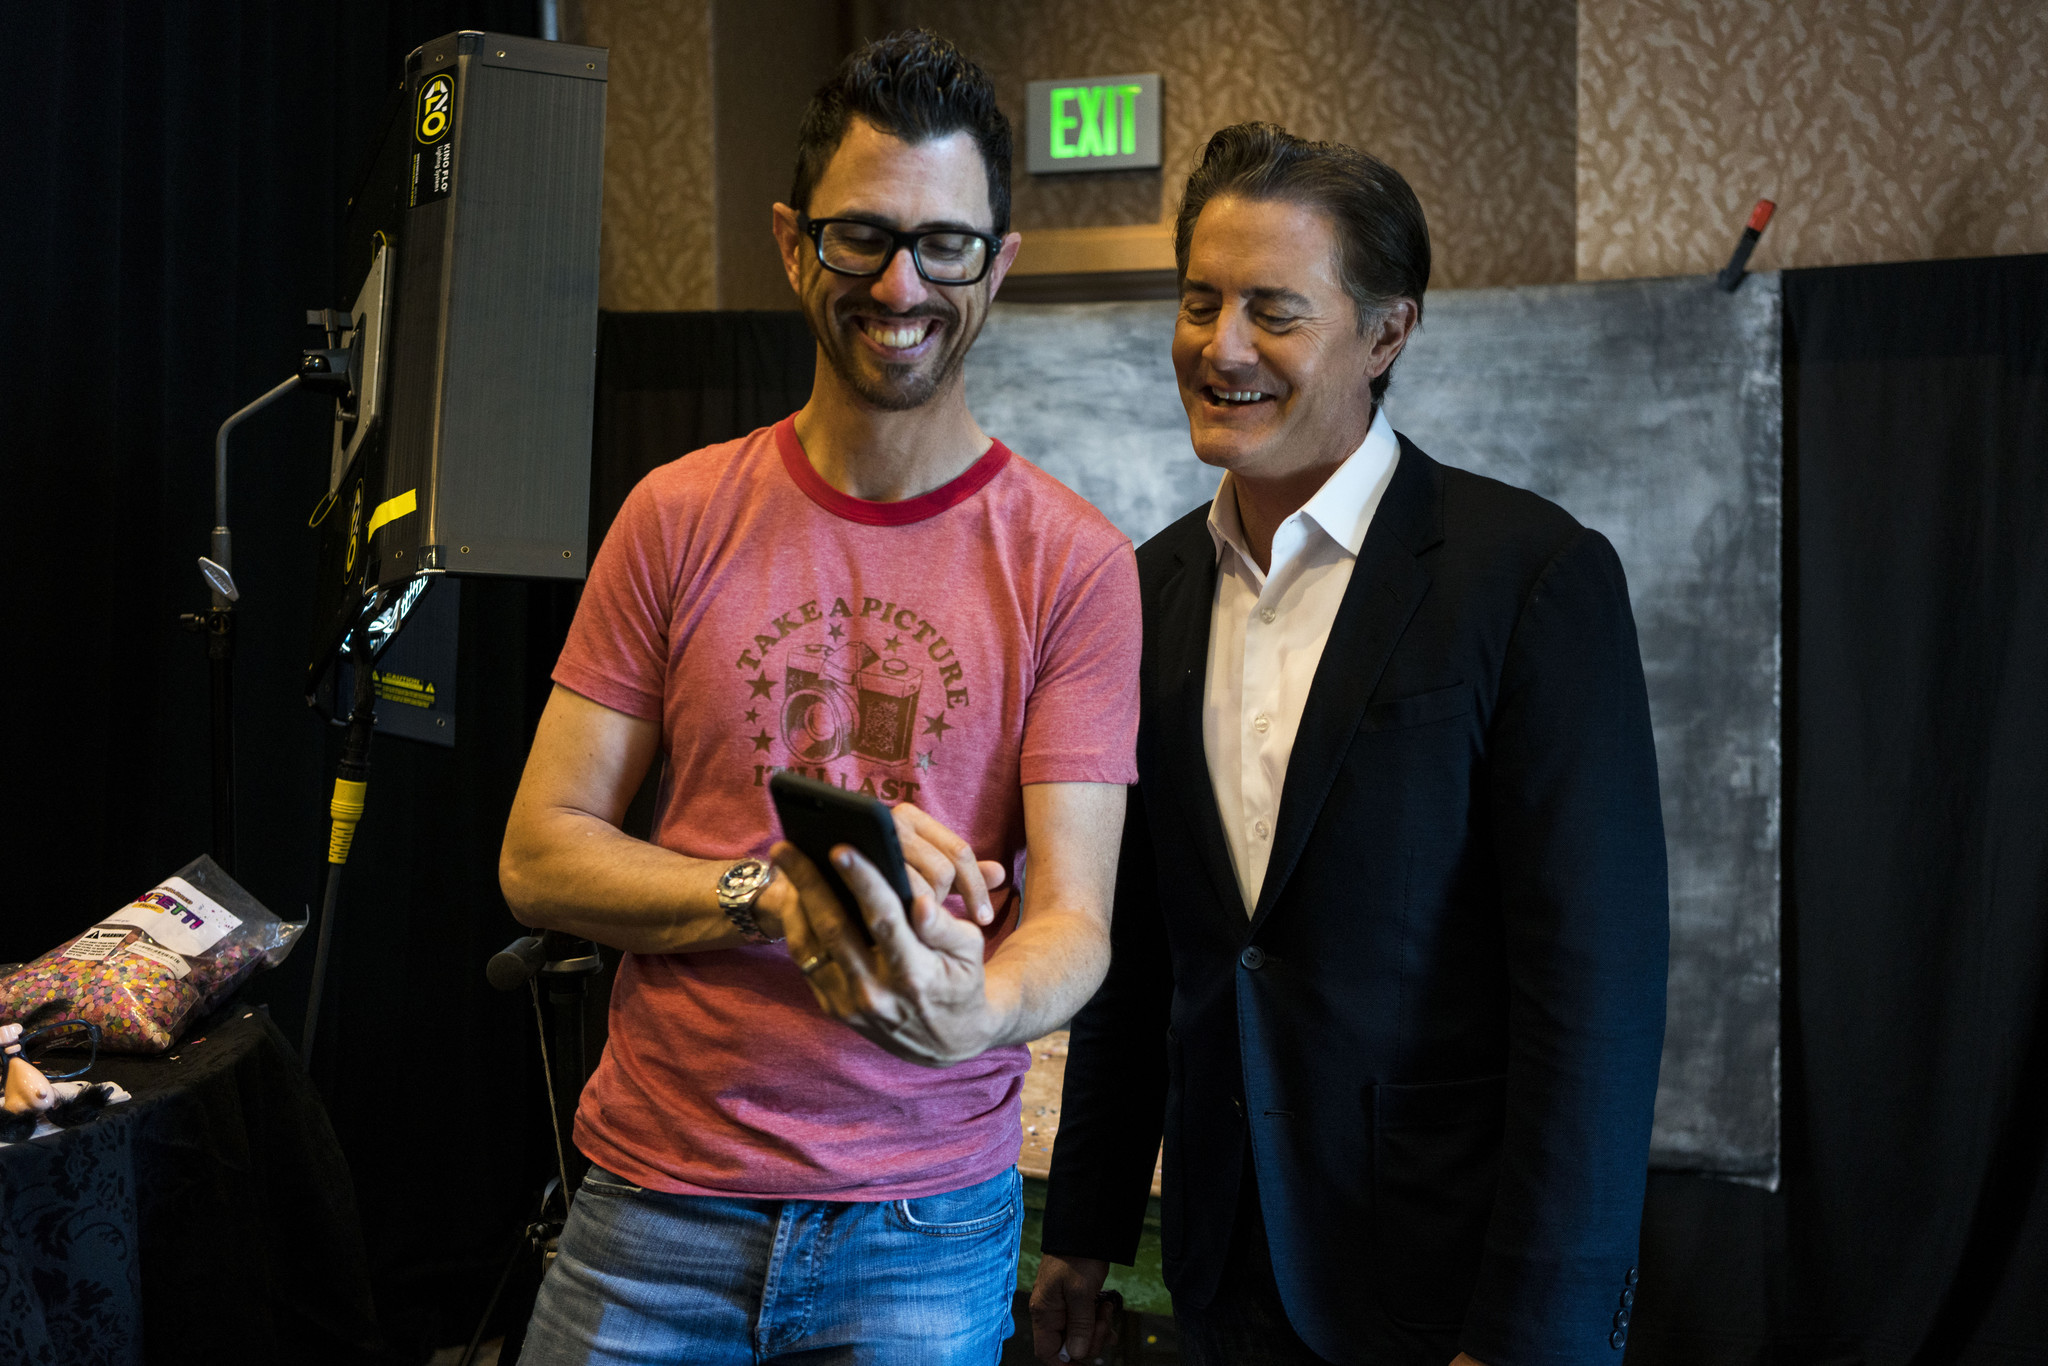 Los Angeles Times photographer Jay L. Clendenin and actor Kyle MacLachlan laugh at the final cut.